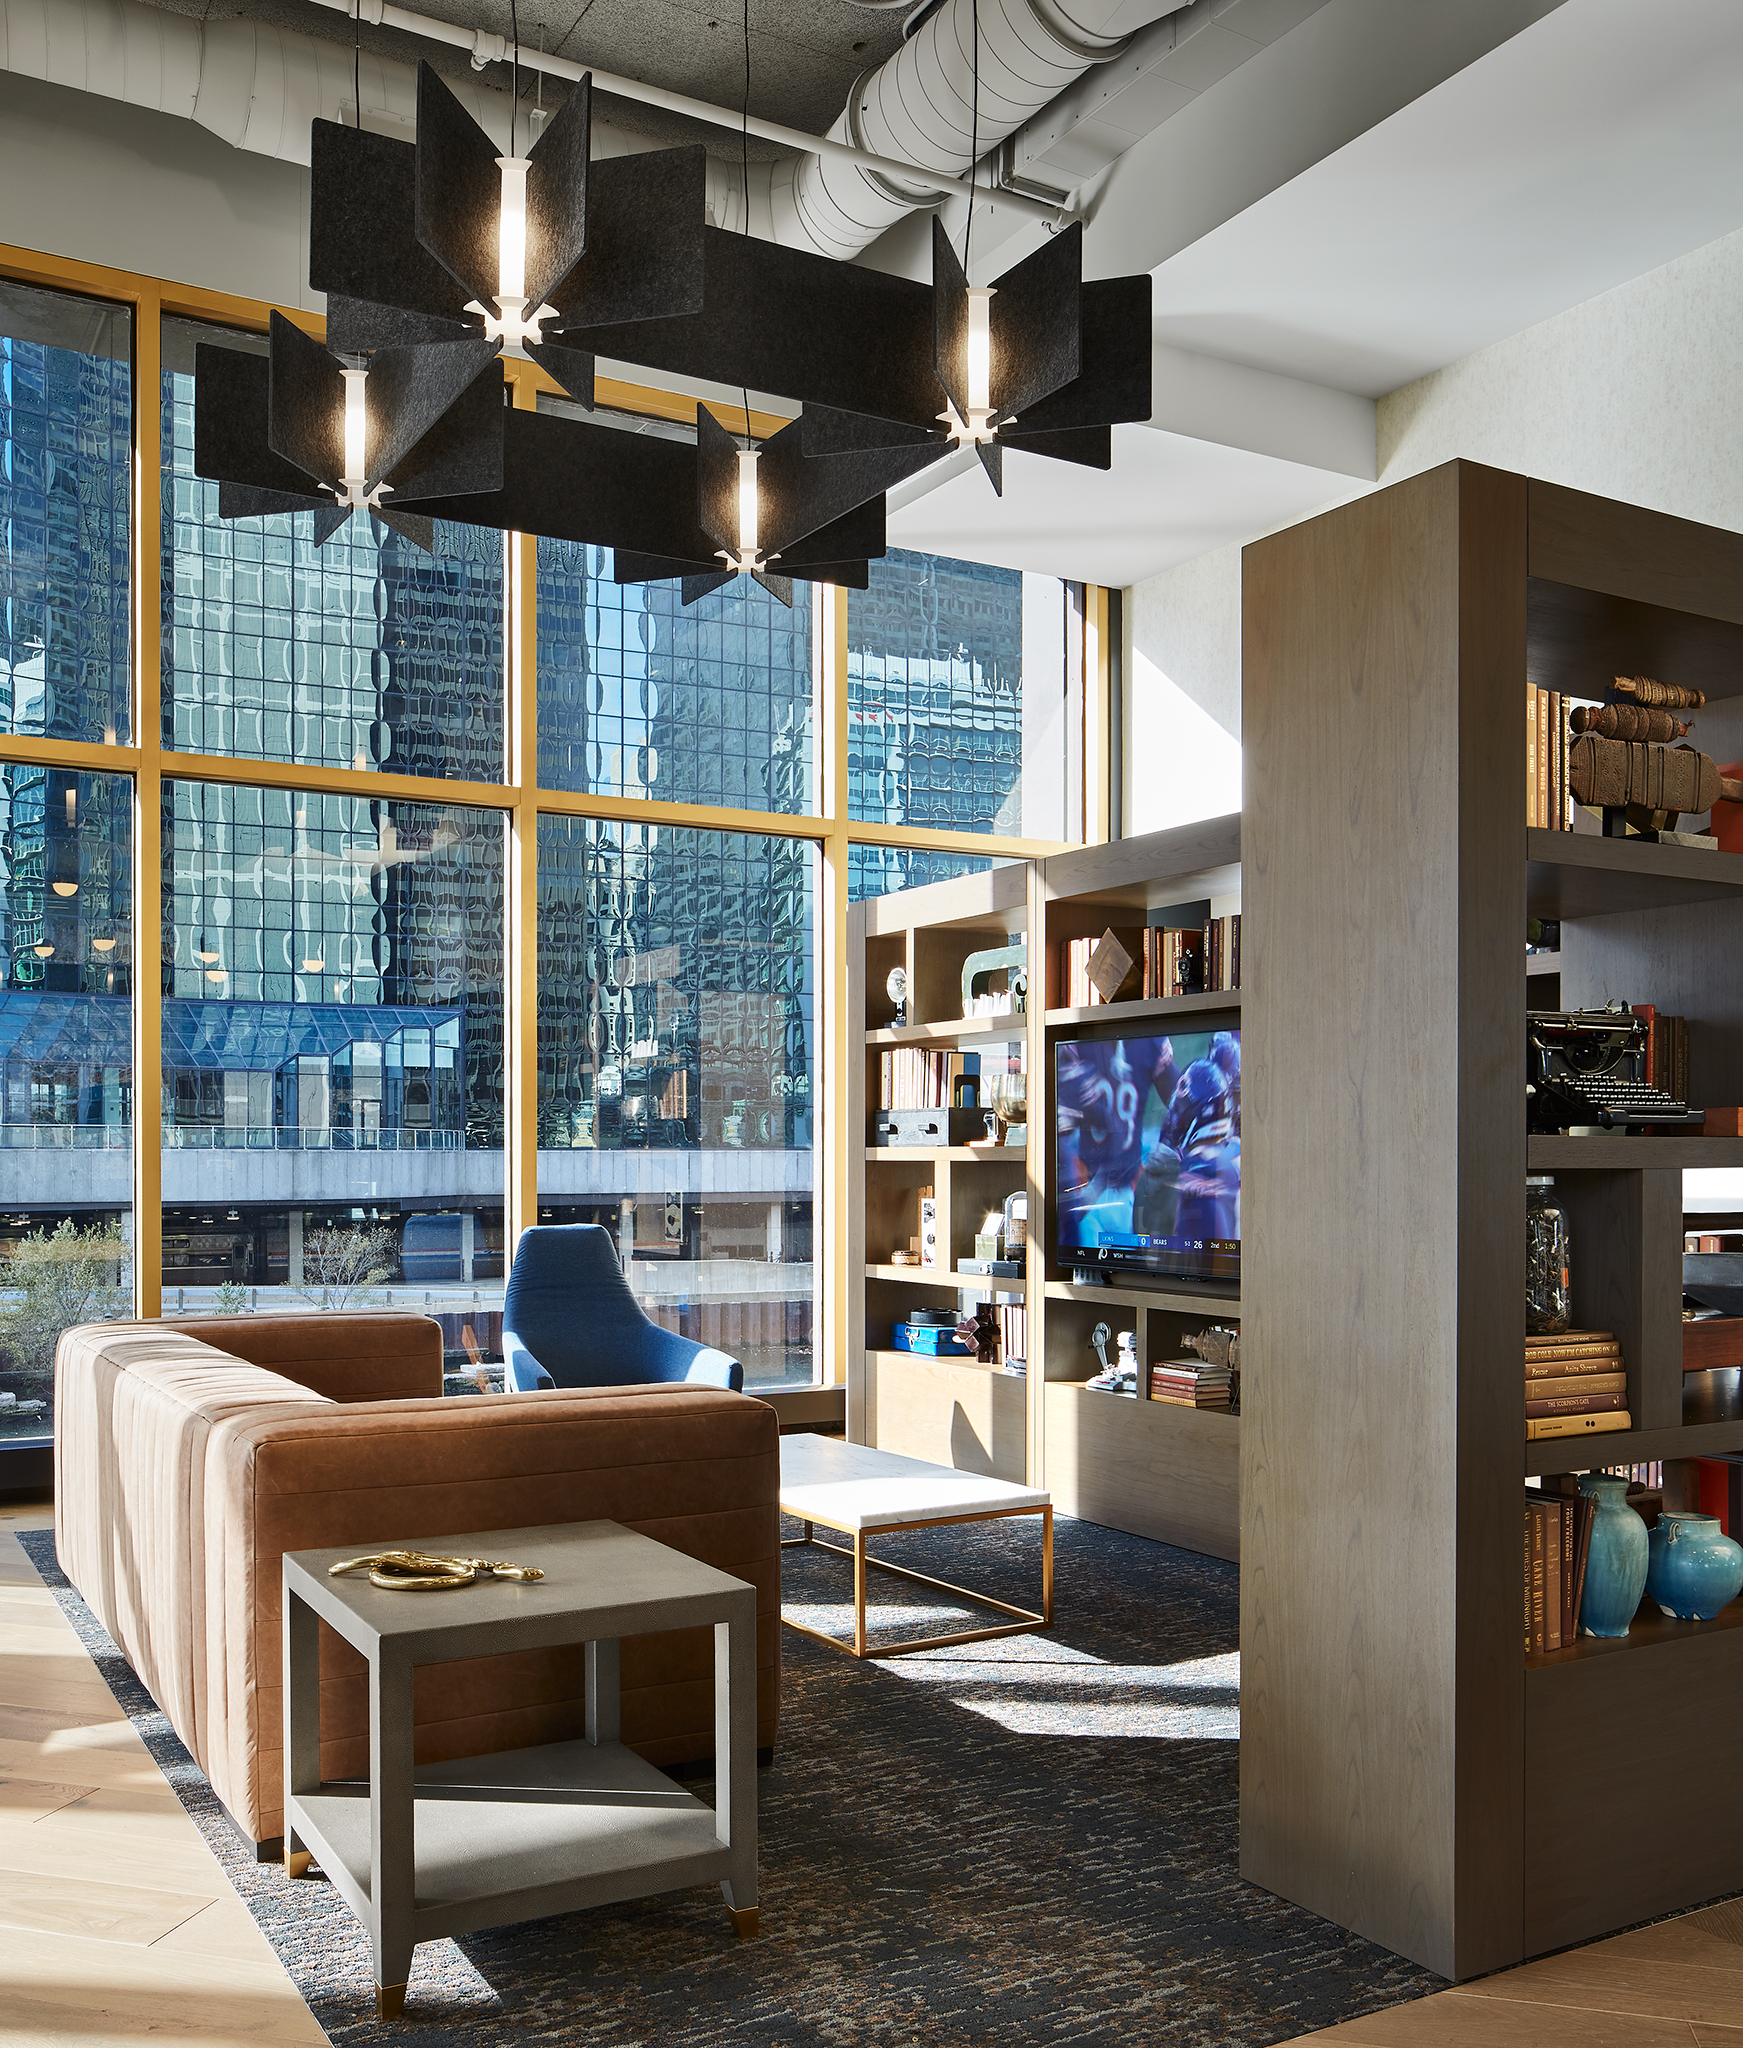 300 South Wacker  Huntsman Architecture Group  Chicago, IL     Return to Projects